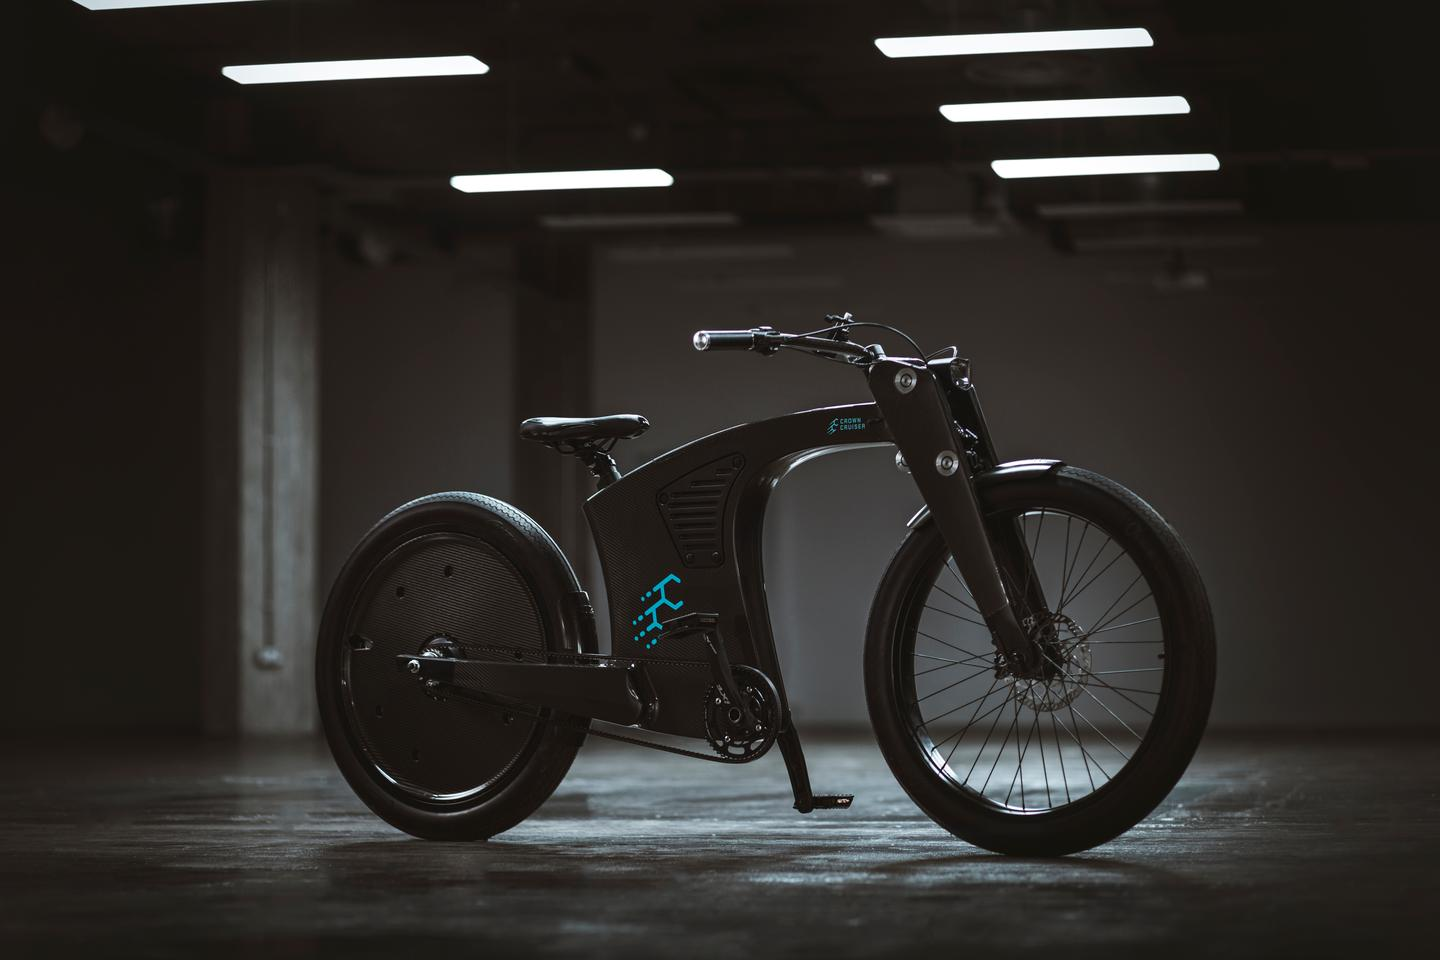 The CrownCruiser ebike can be had with a 250-W or 750-W motor